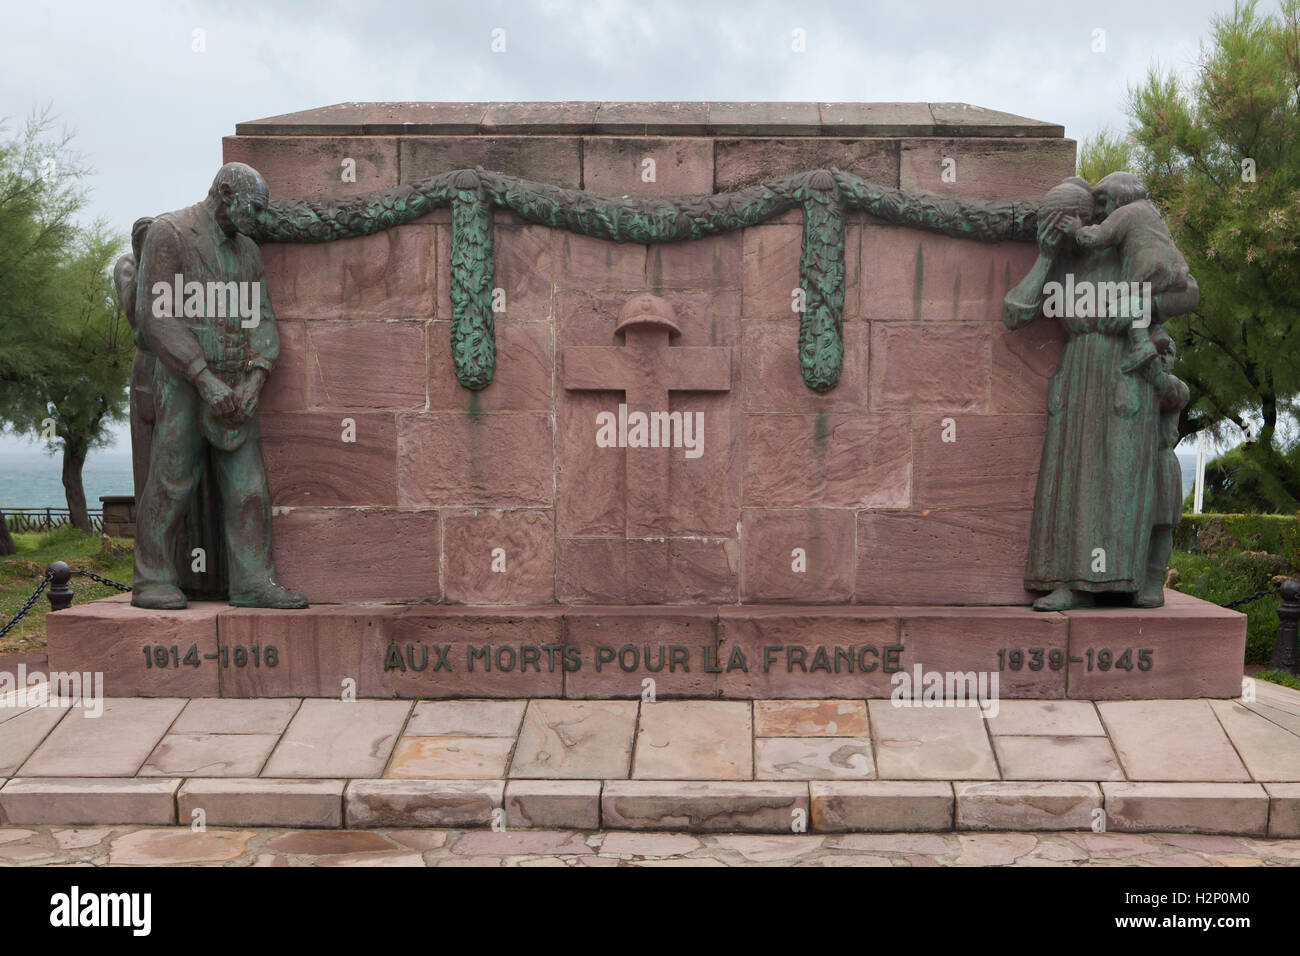 French War Memorial to fallen in World War I and World War II in Biarritz, French Basque Country, France. - Stock Image